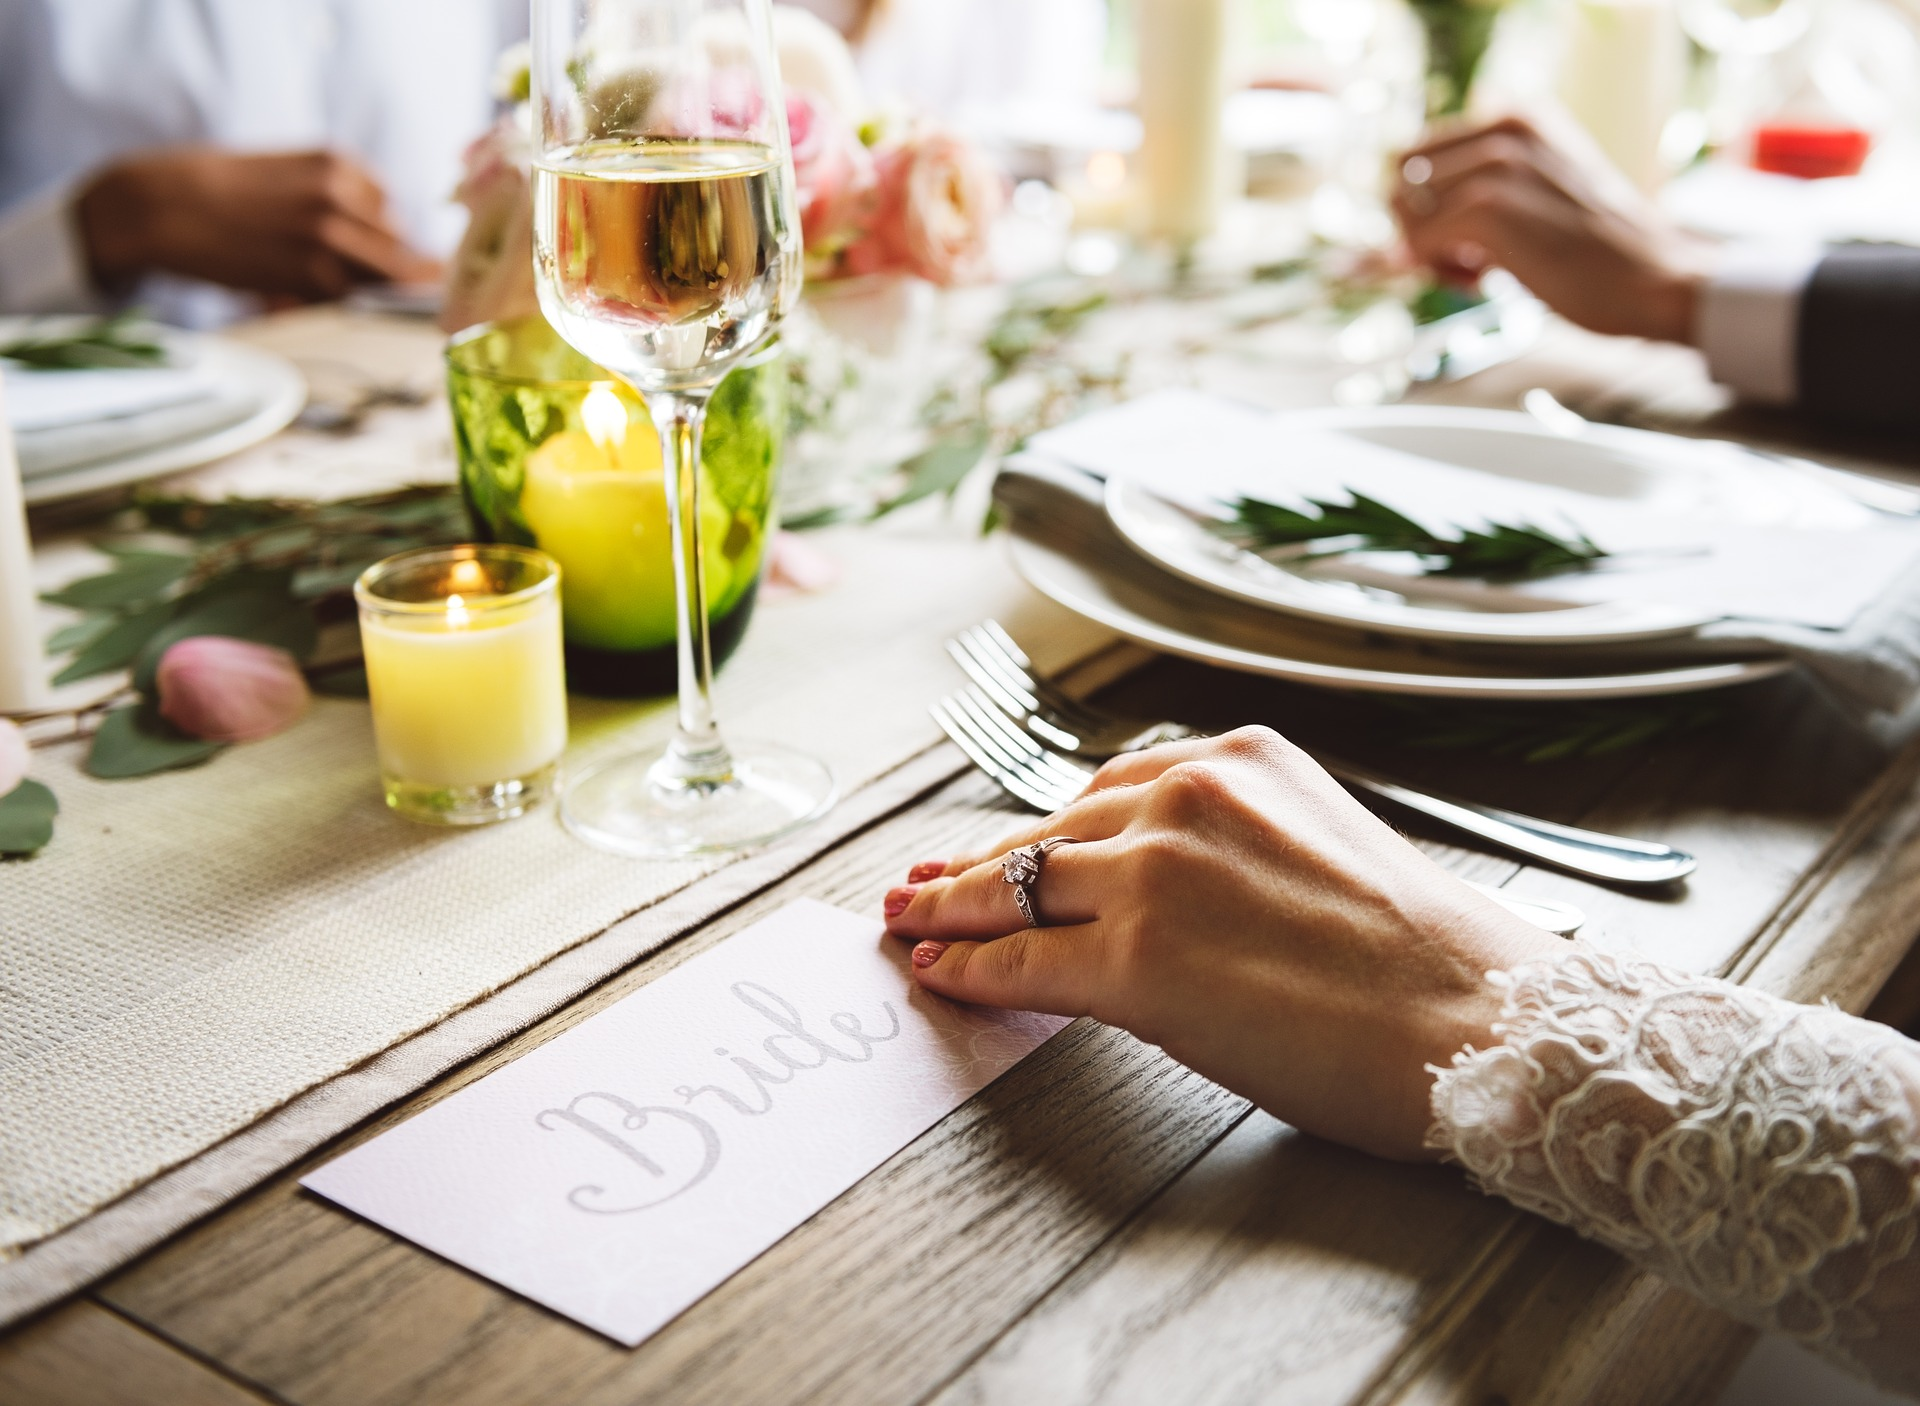 """part of table at wedding reception showing """"bride"""" place and her hand as well as plates, wine glass, and candle, making the seating plan clear for the table"""